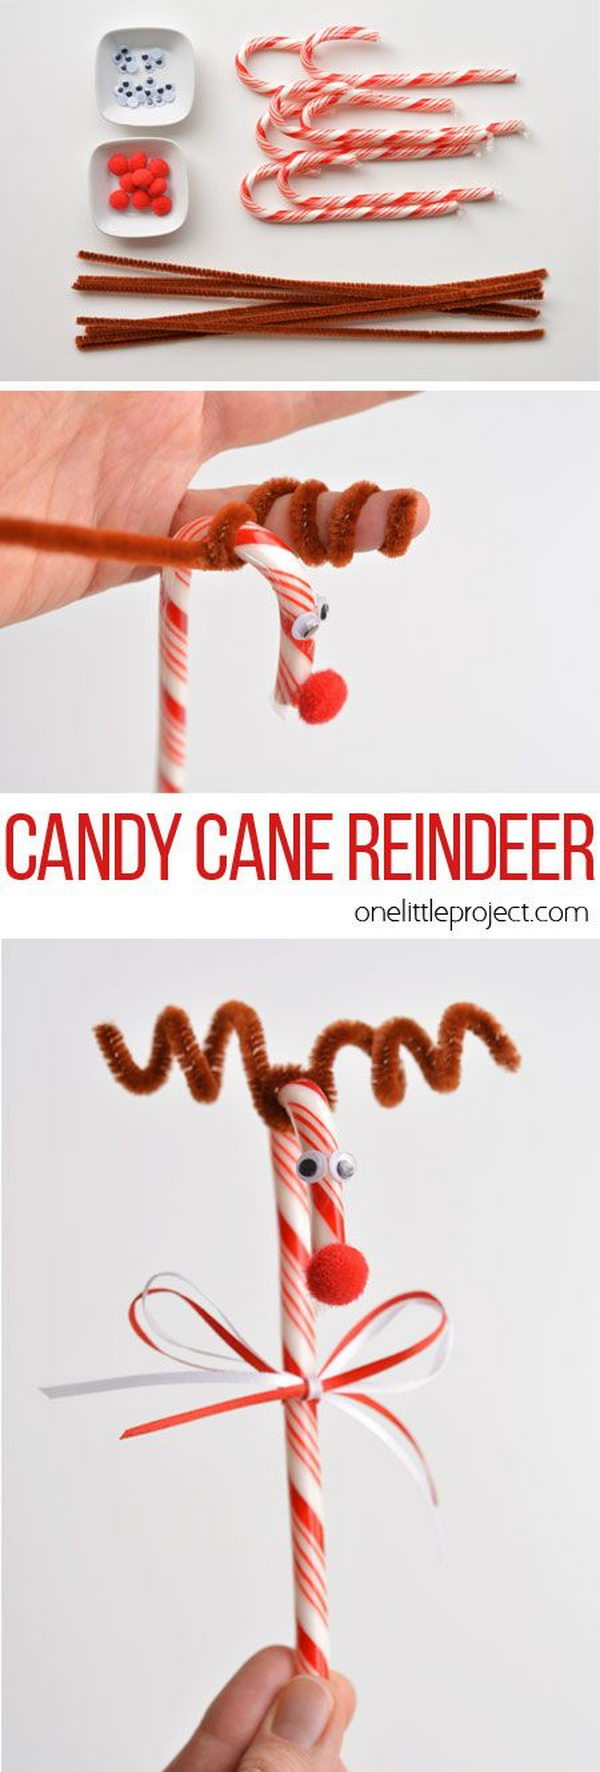 Make A Candy Cane Reindeer With Your Kids.